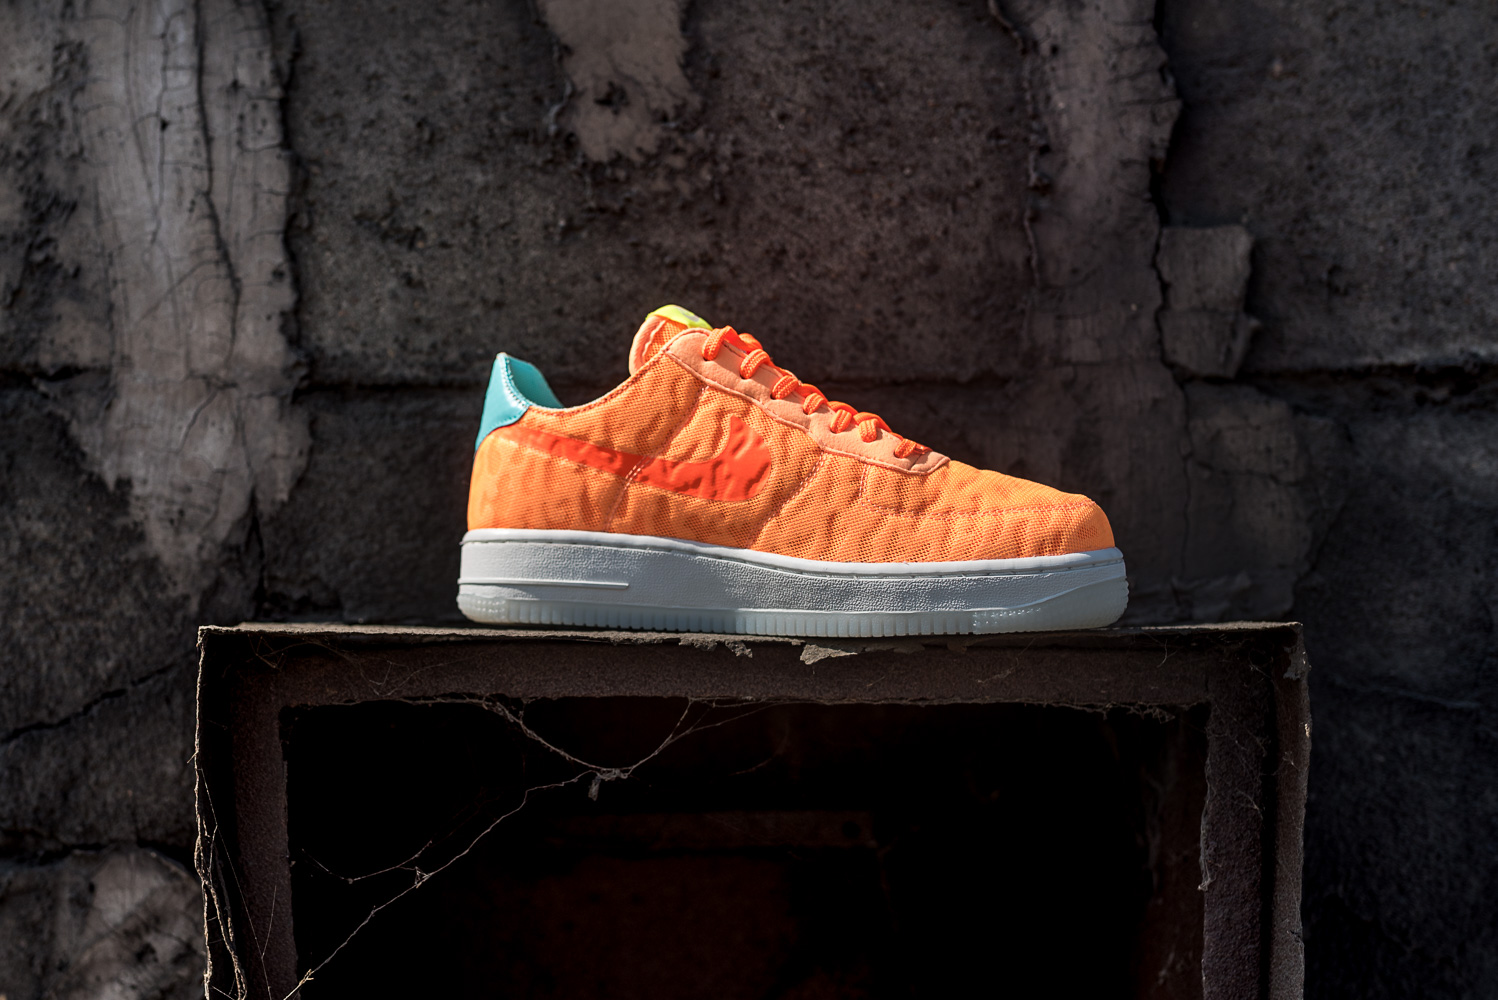 NIKE WOMEN'S AIR FORCE 1 '07 TEXTILE PREMIUM